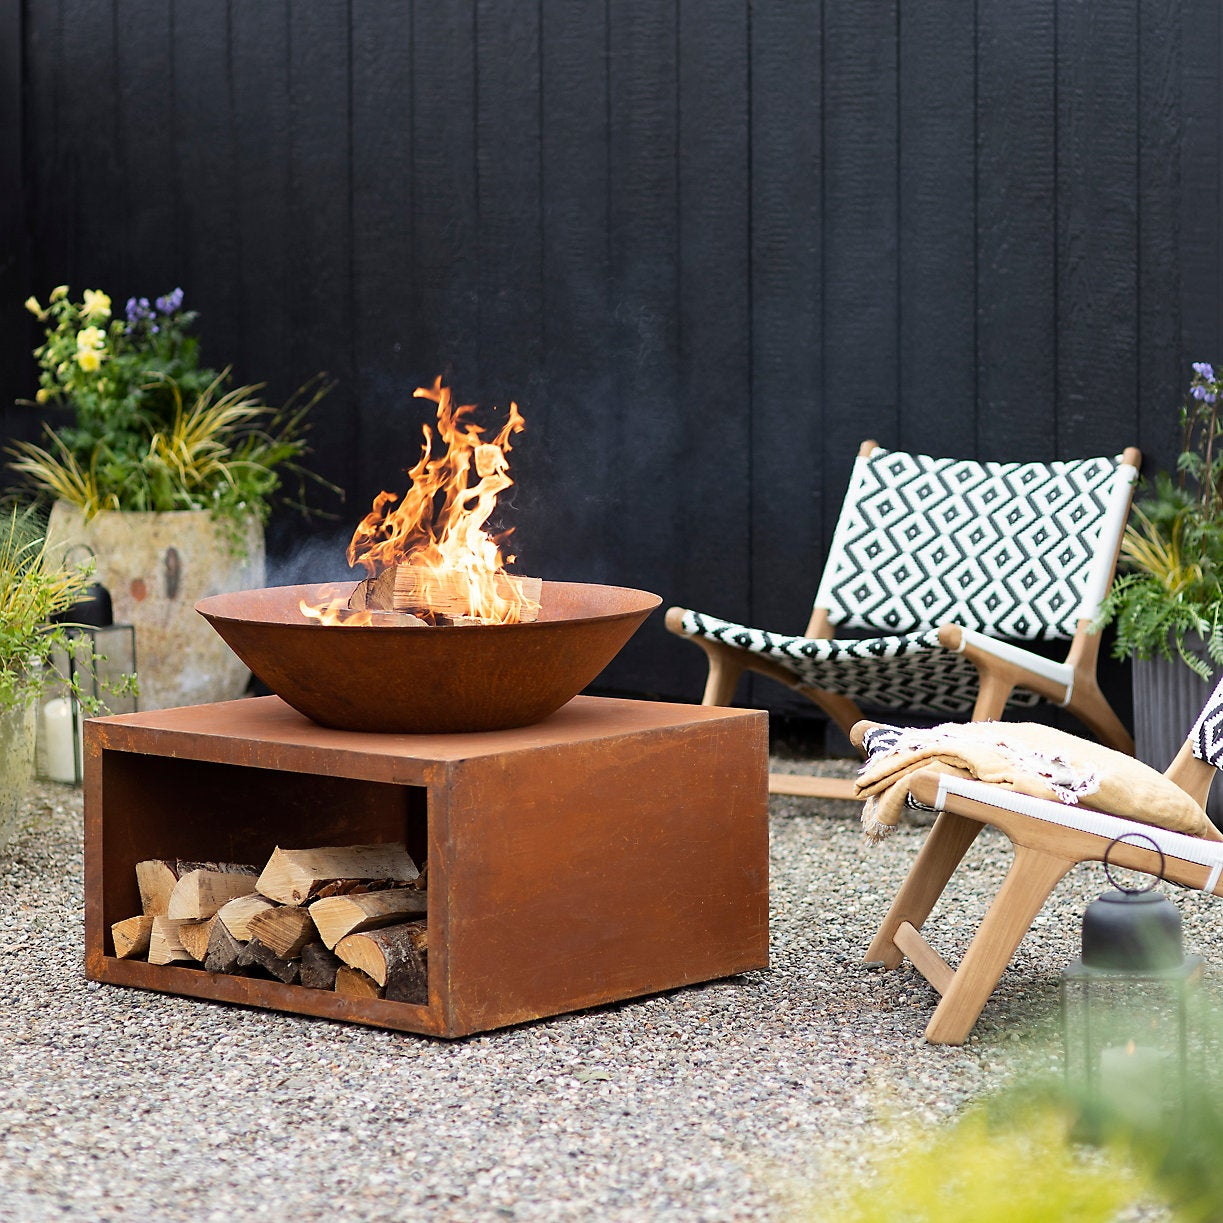 These Are Summer 2019's Biggest Outdoor Decor Trends